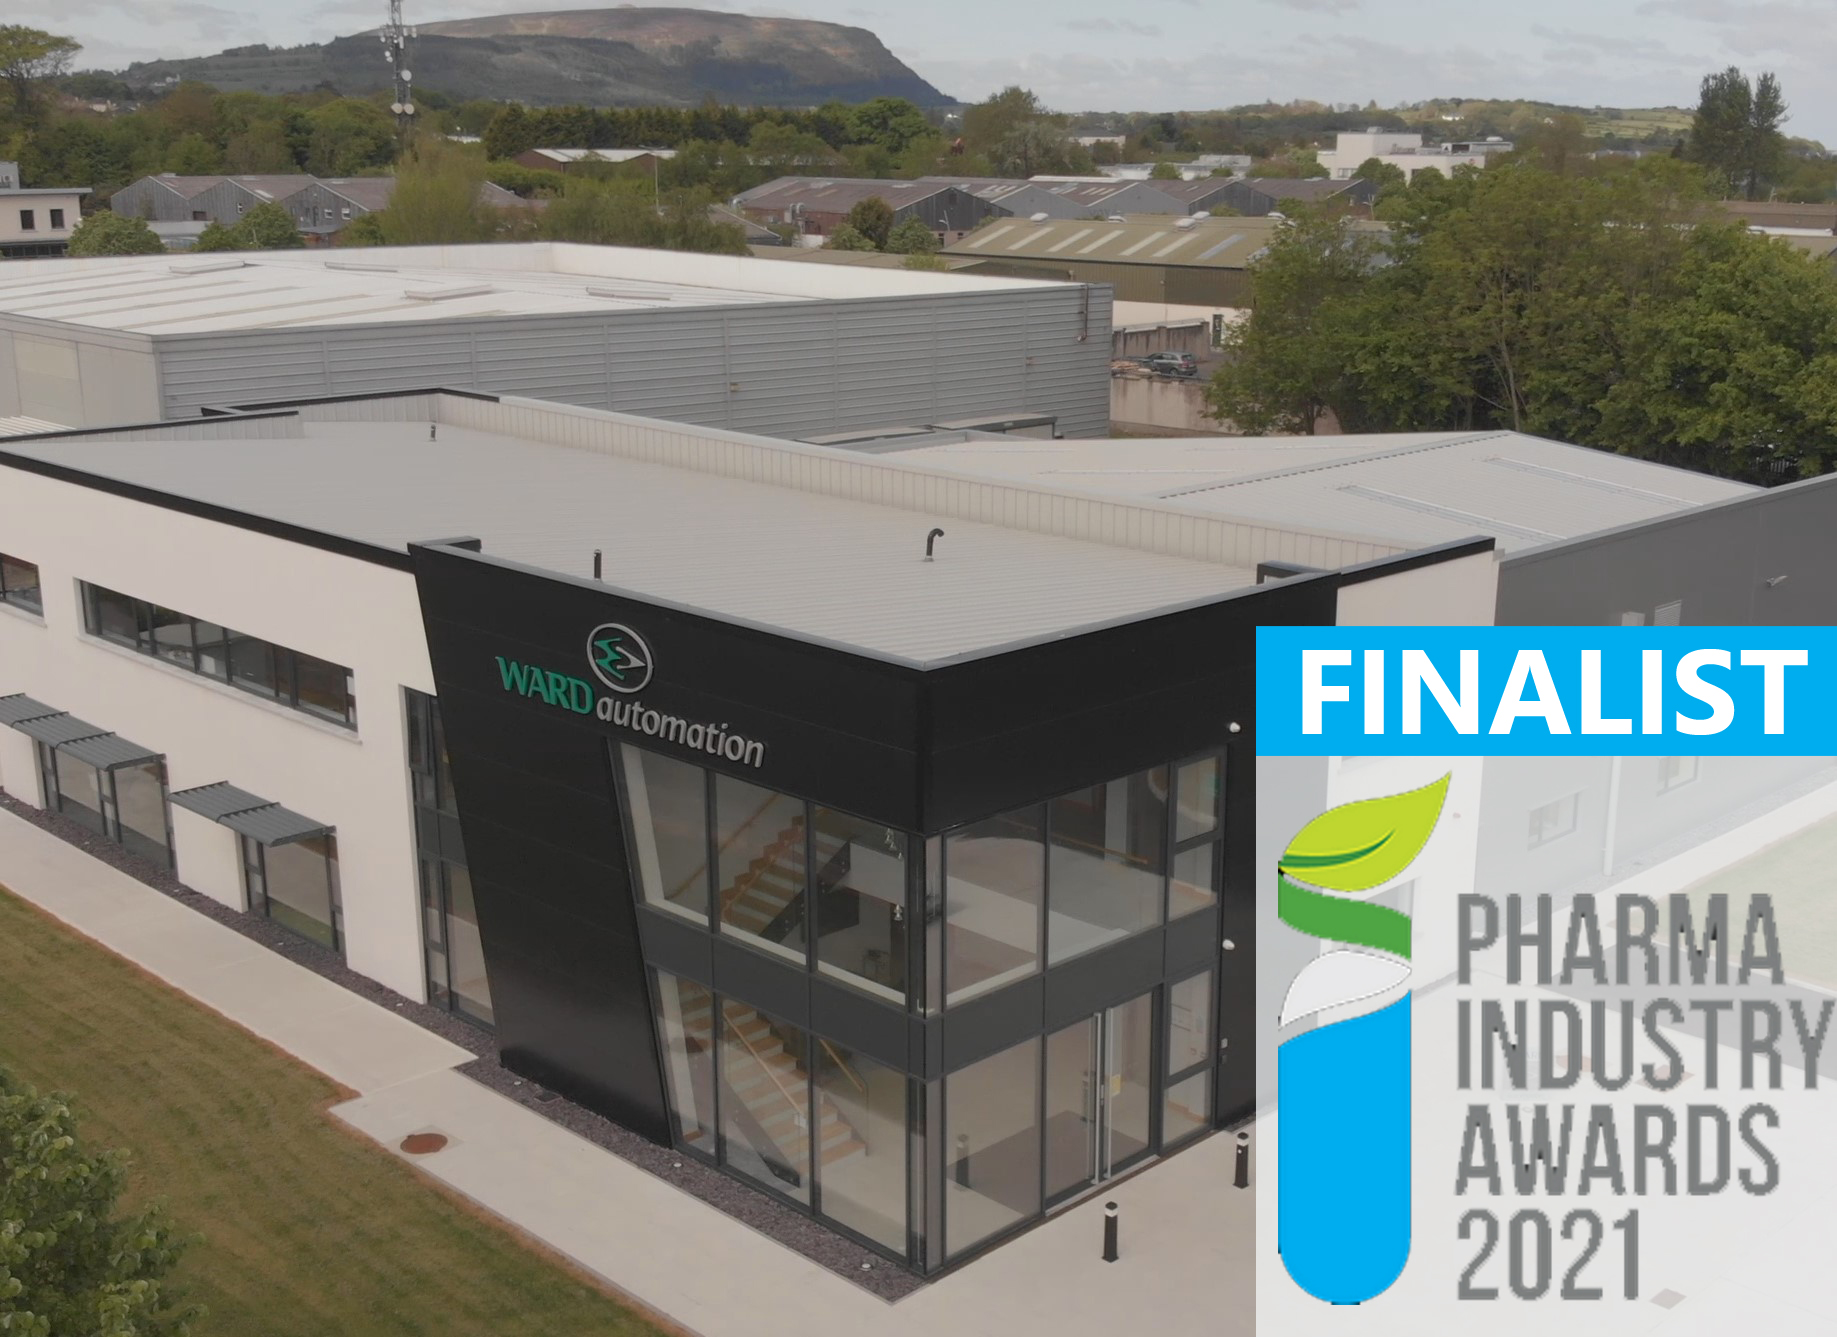 Ward Automation finalists in Pharma Industry Awards